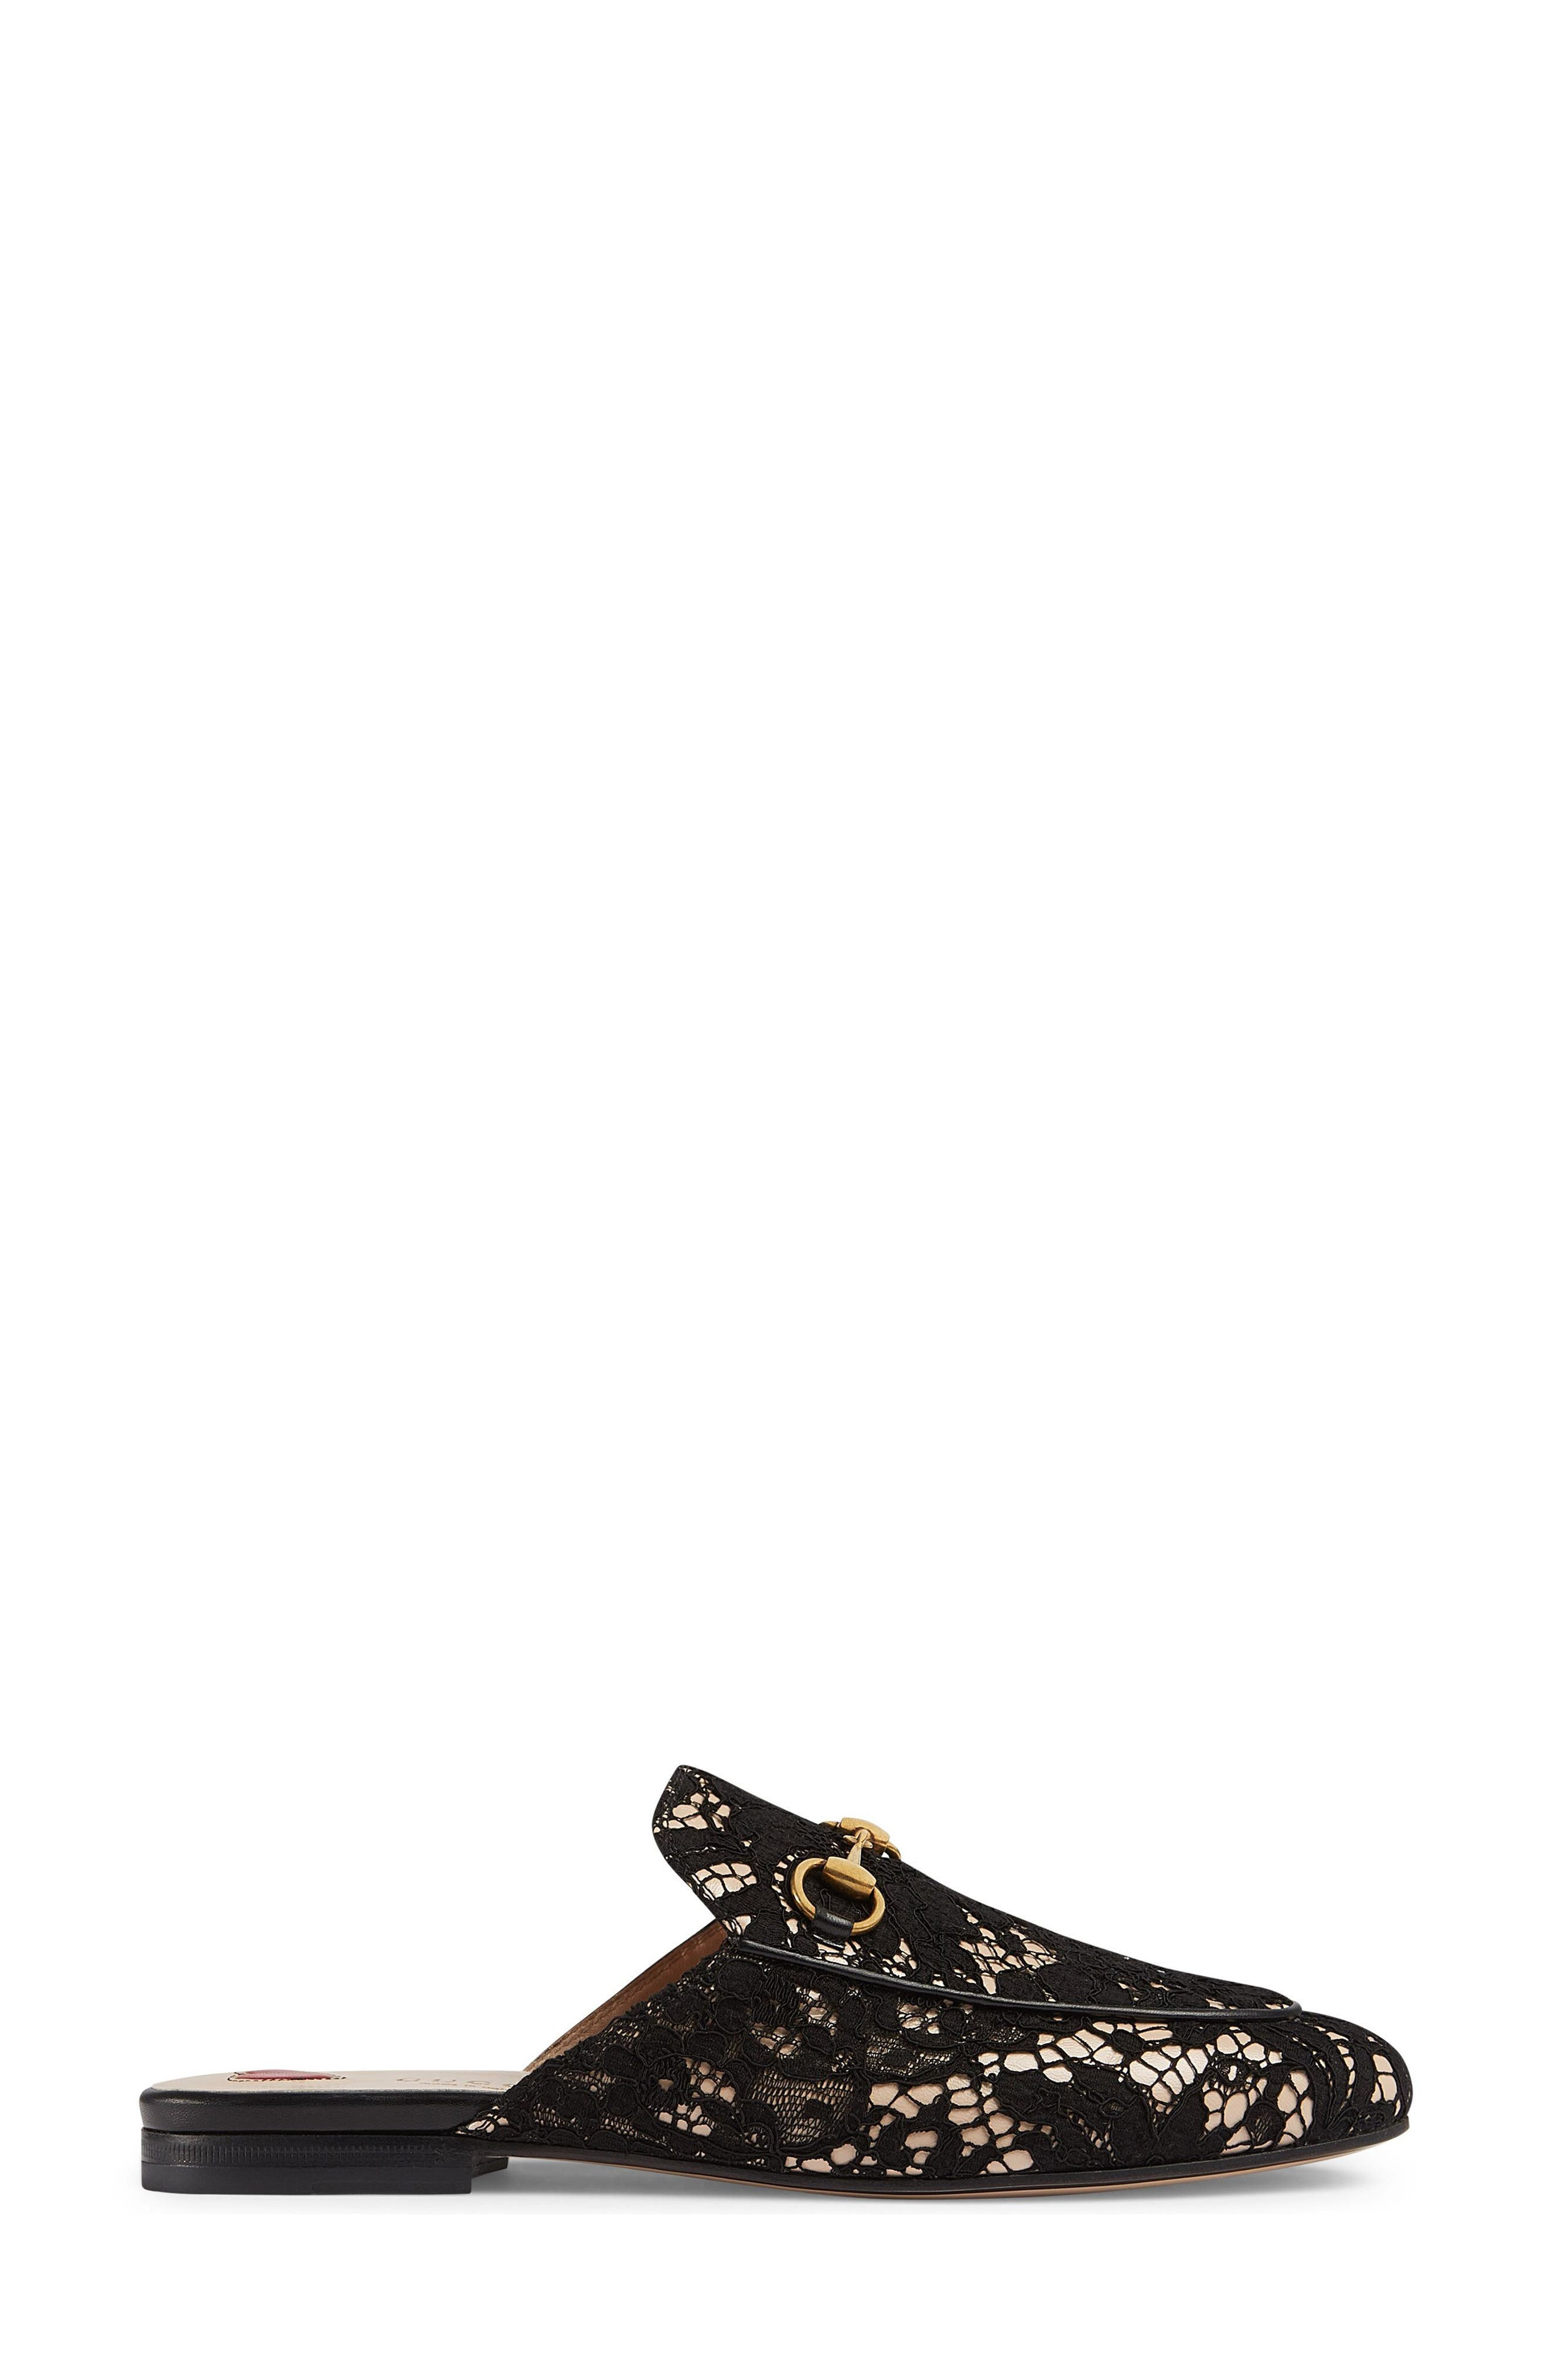 Alternate Image 1 Selected - Gucci Lace Princetown Loafer Mule (Women)